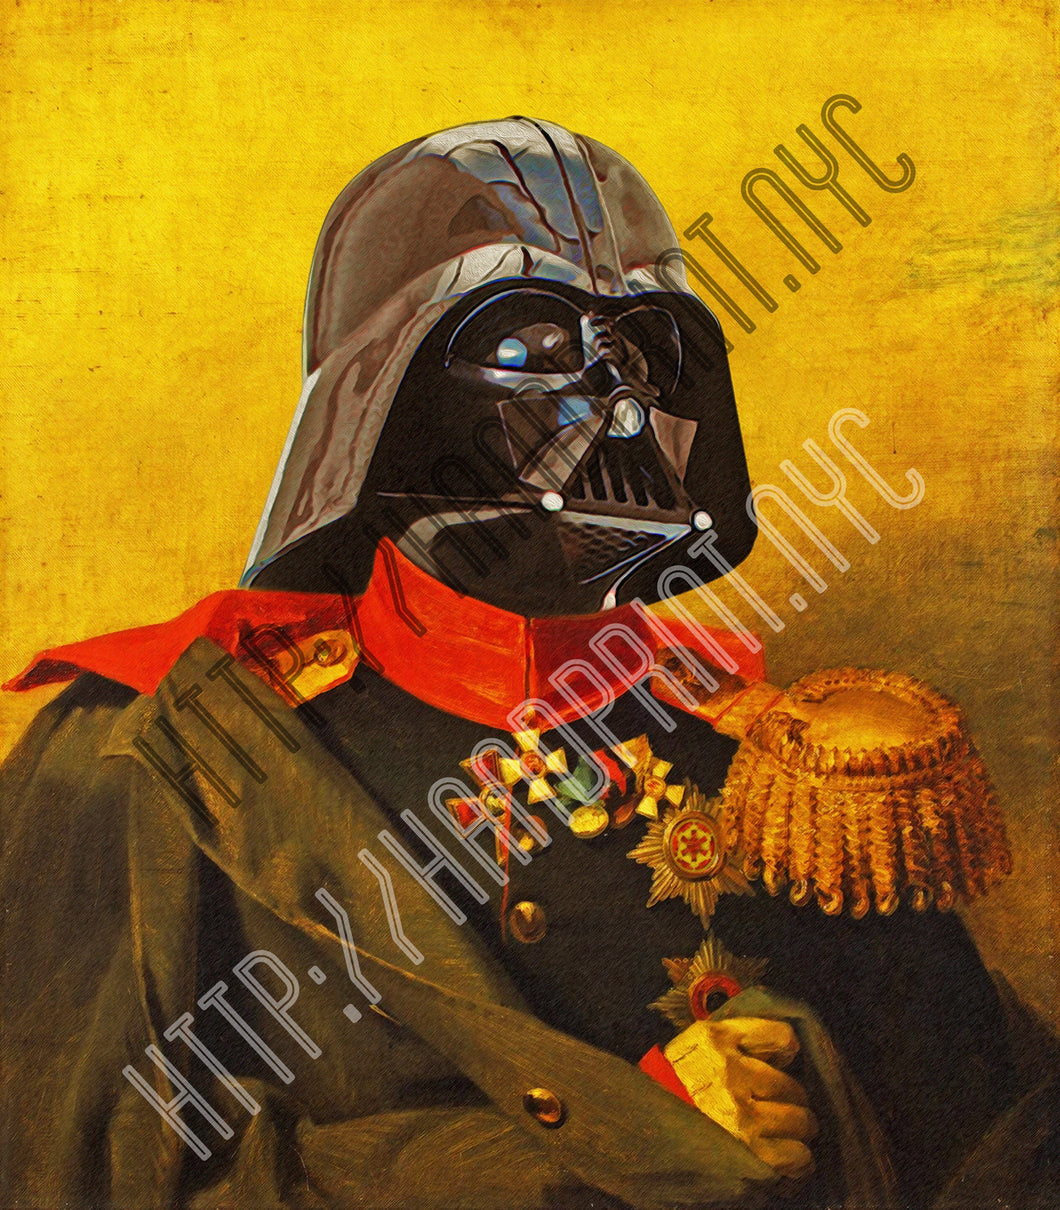 Darth Vader Portrait Print - 5x7 or 8x10